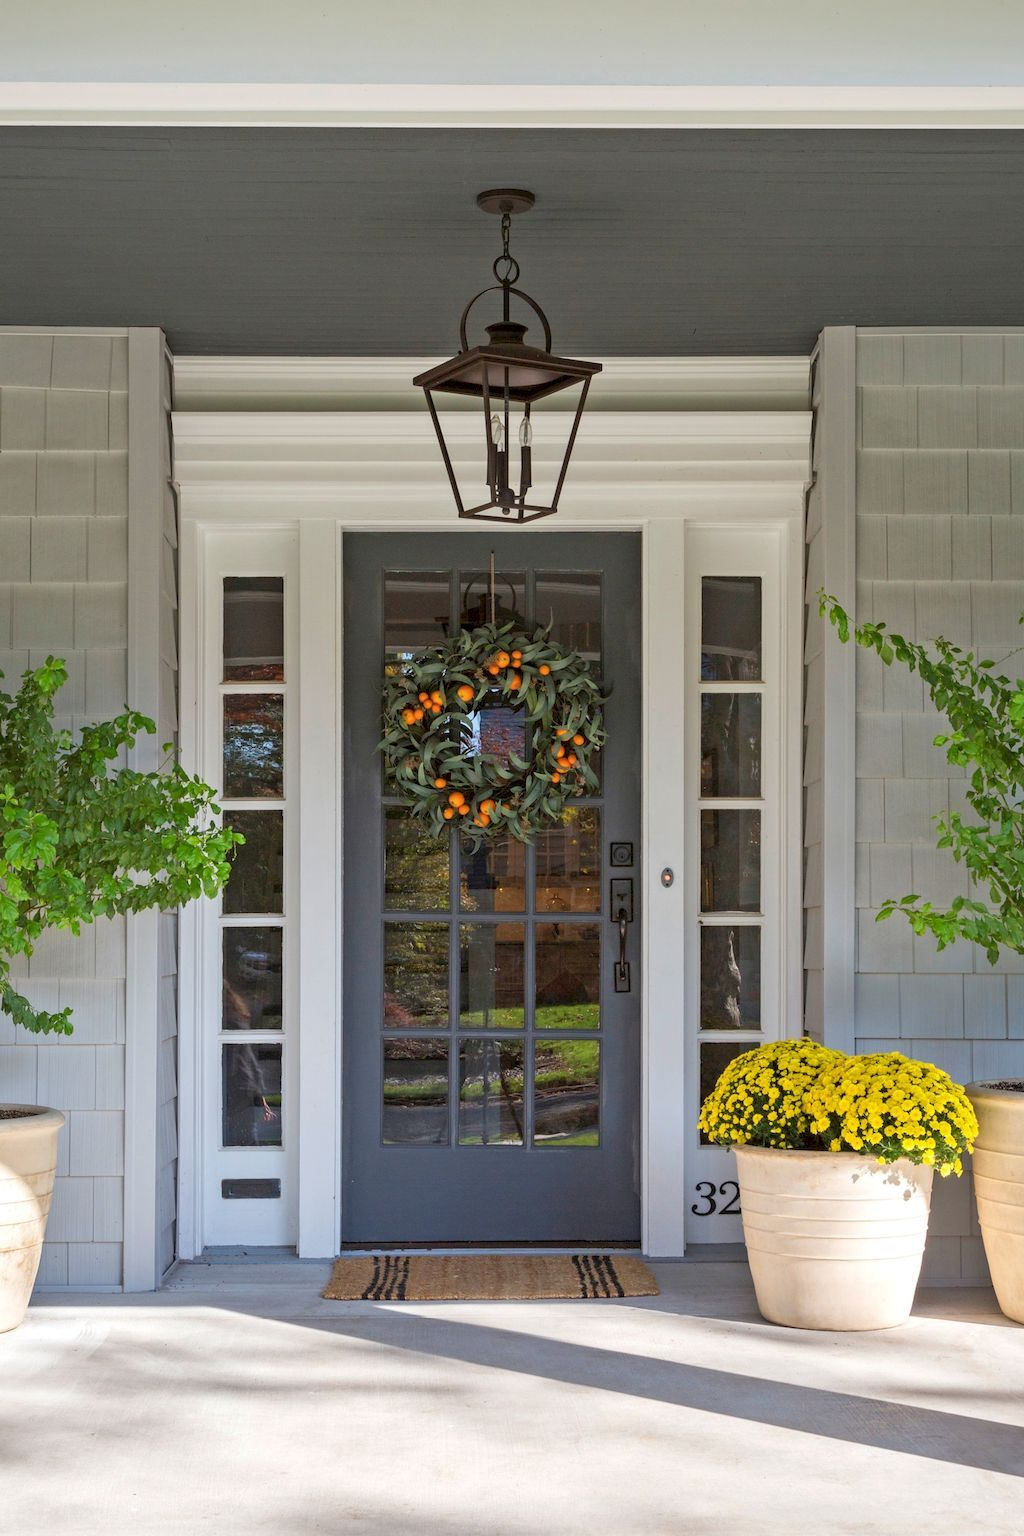 Awesome fabulous traditional front door design besideroom